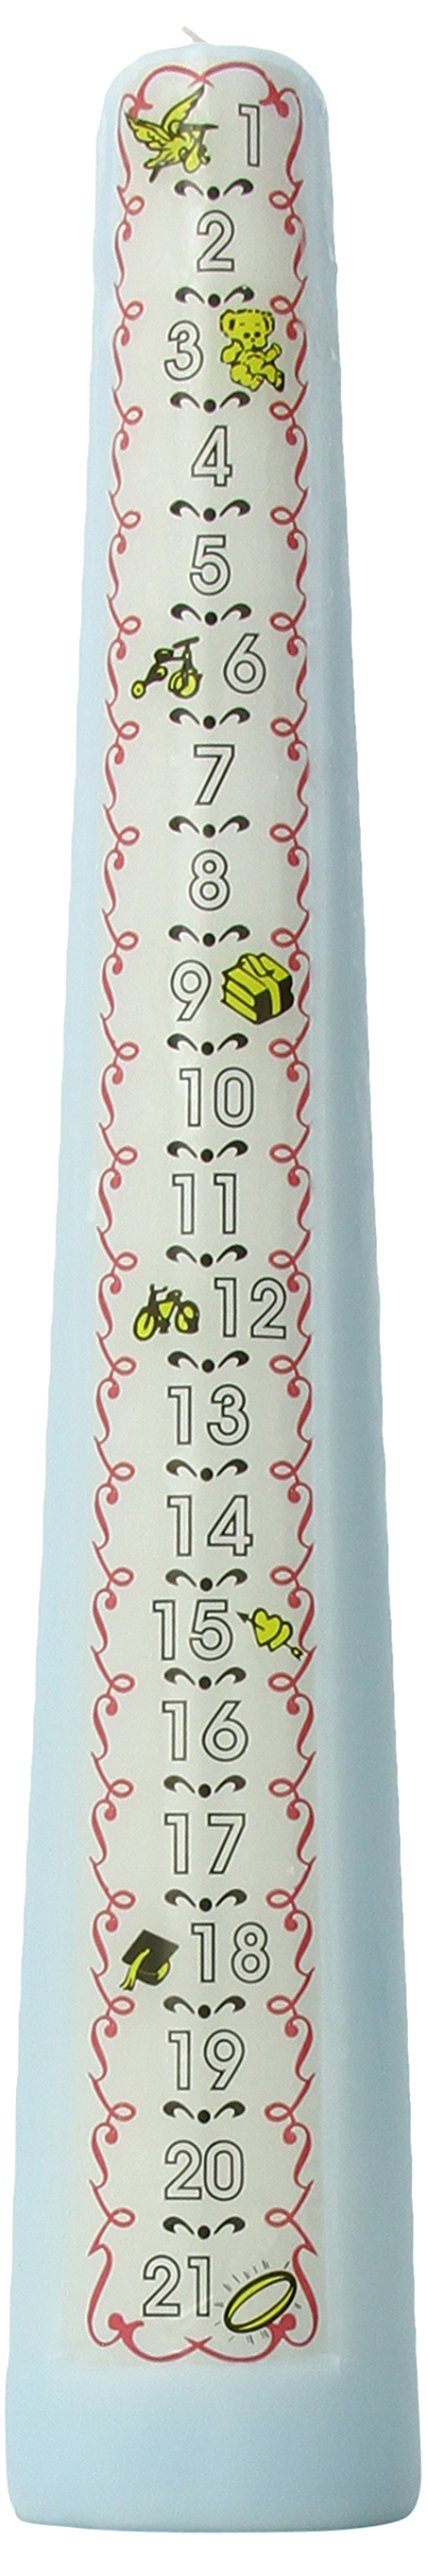 Celebration Candles 1 21 Year Numbered Birthday Candle Blue